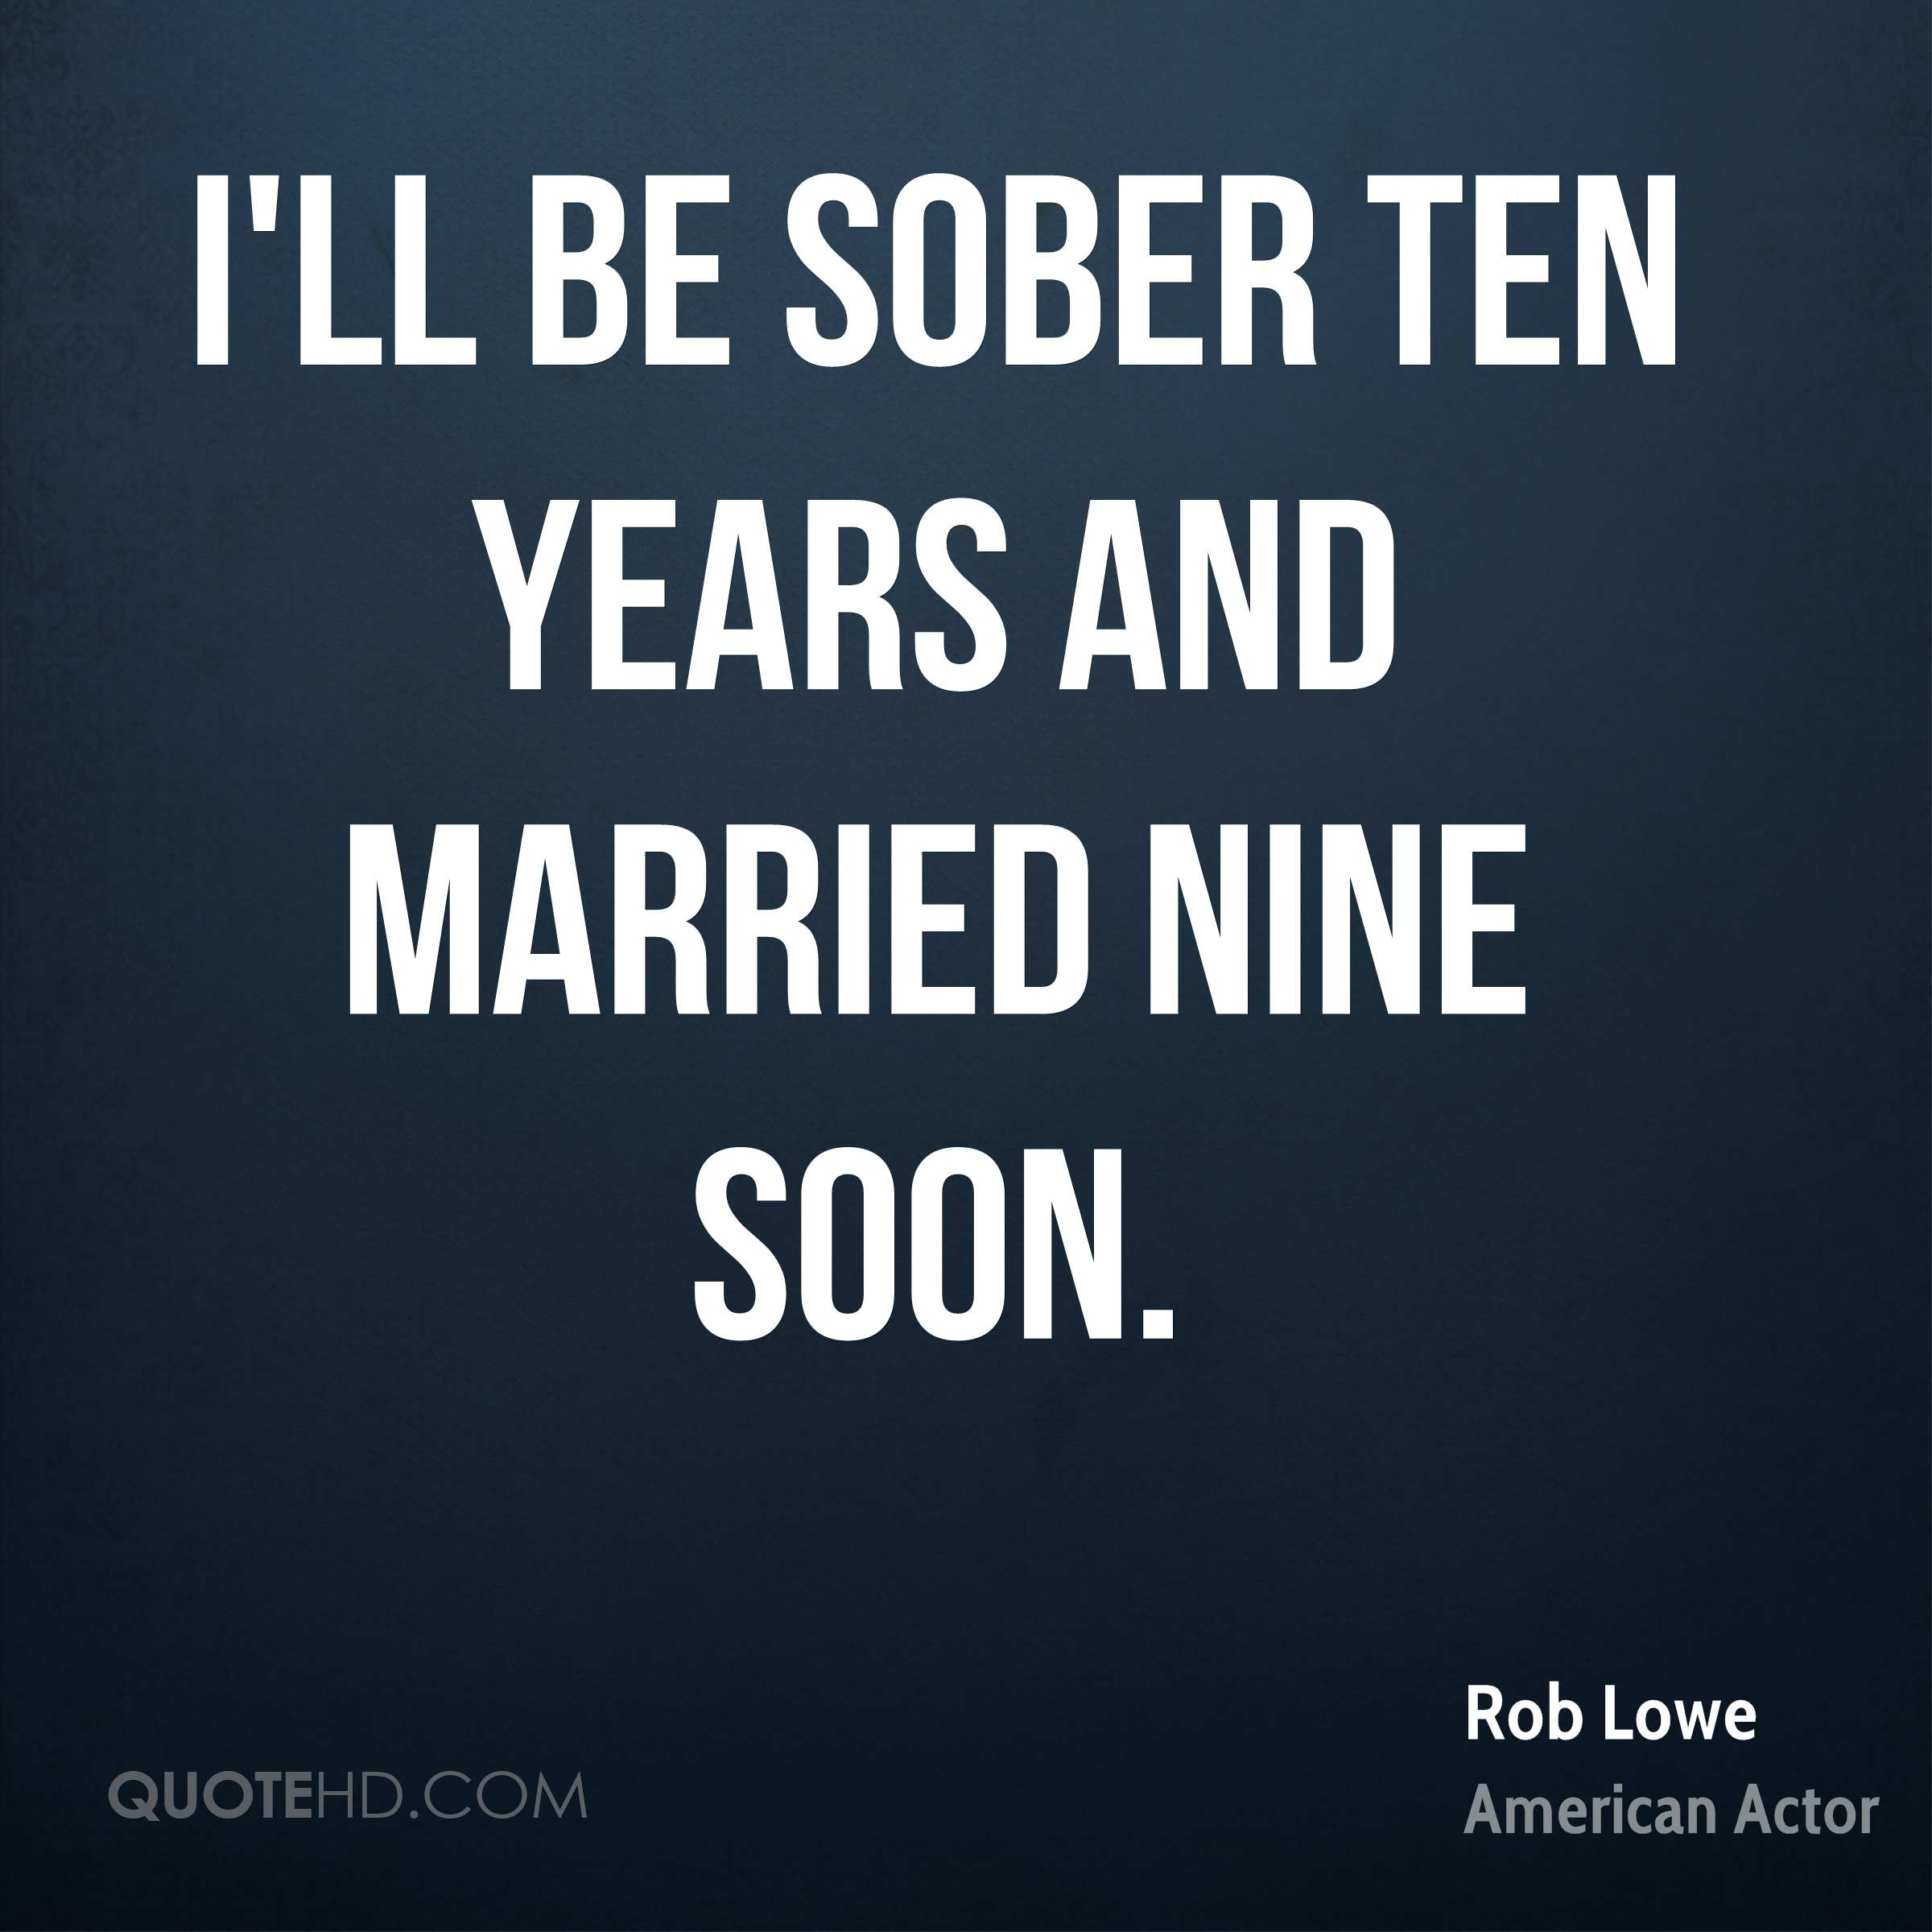 I'll be sober ten years and married nine soon.